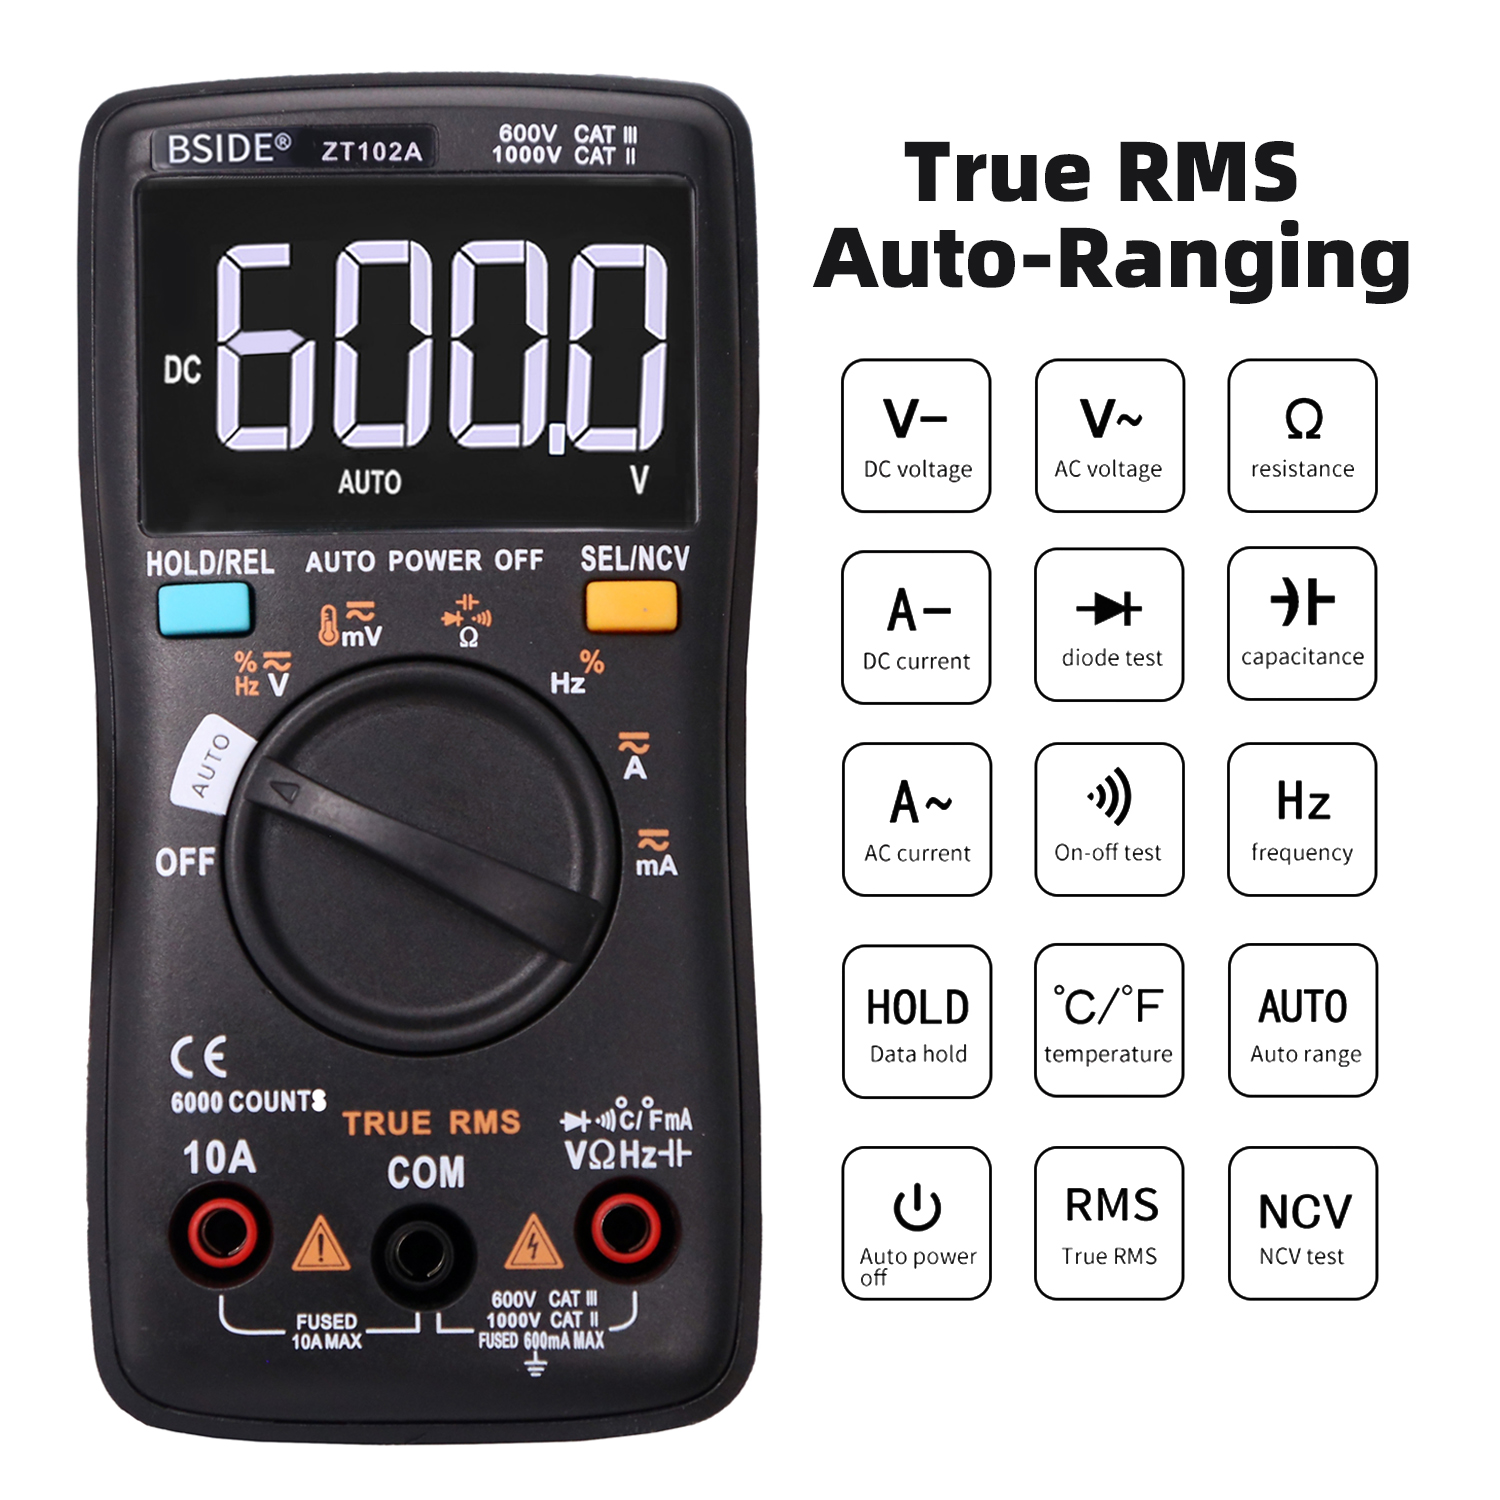 BSIDE ZT102A EBTN LCD Digital Multimeter TRMS AC/DC Voltage Current Temp Ohm Frequency Diode Resistance Capacitance Tester ZT102A